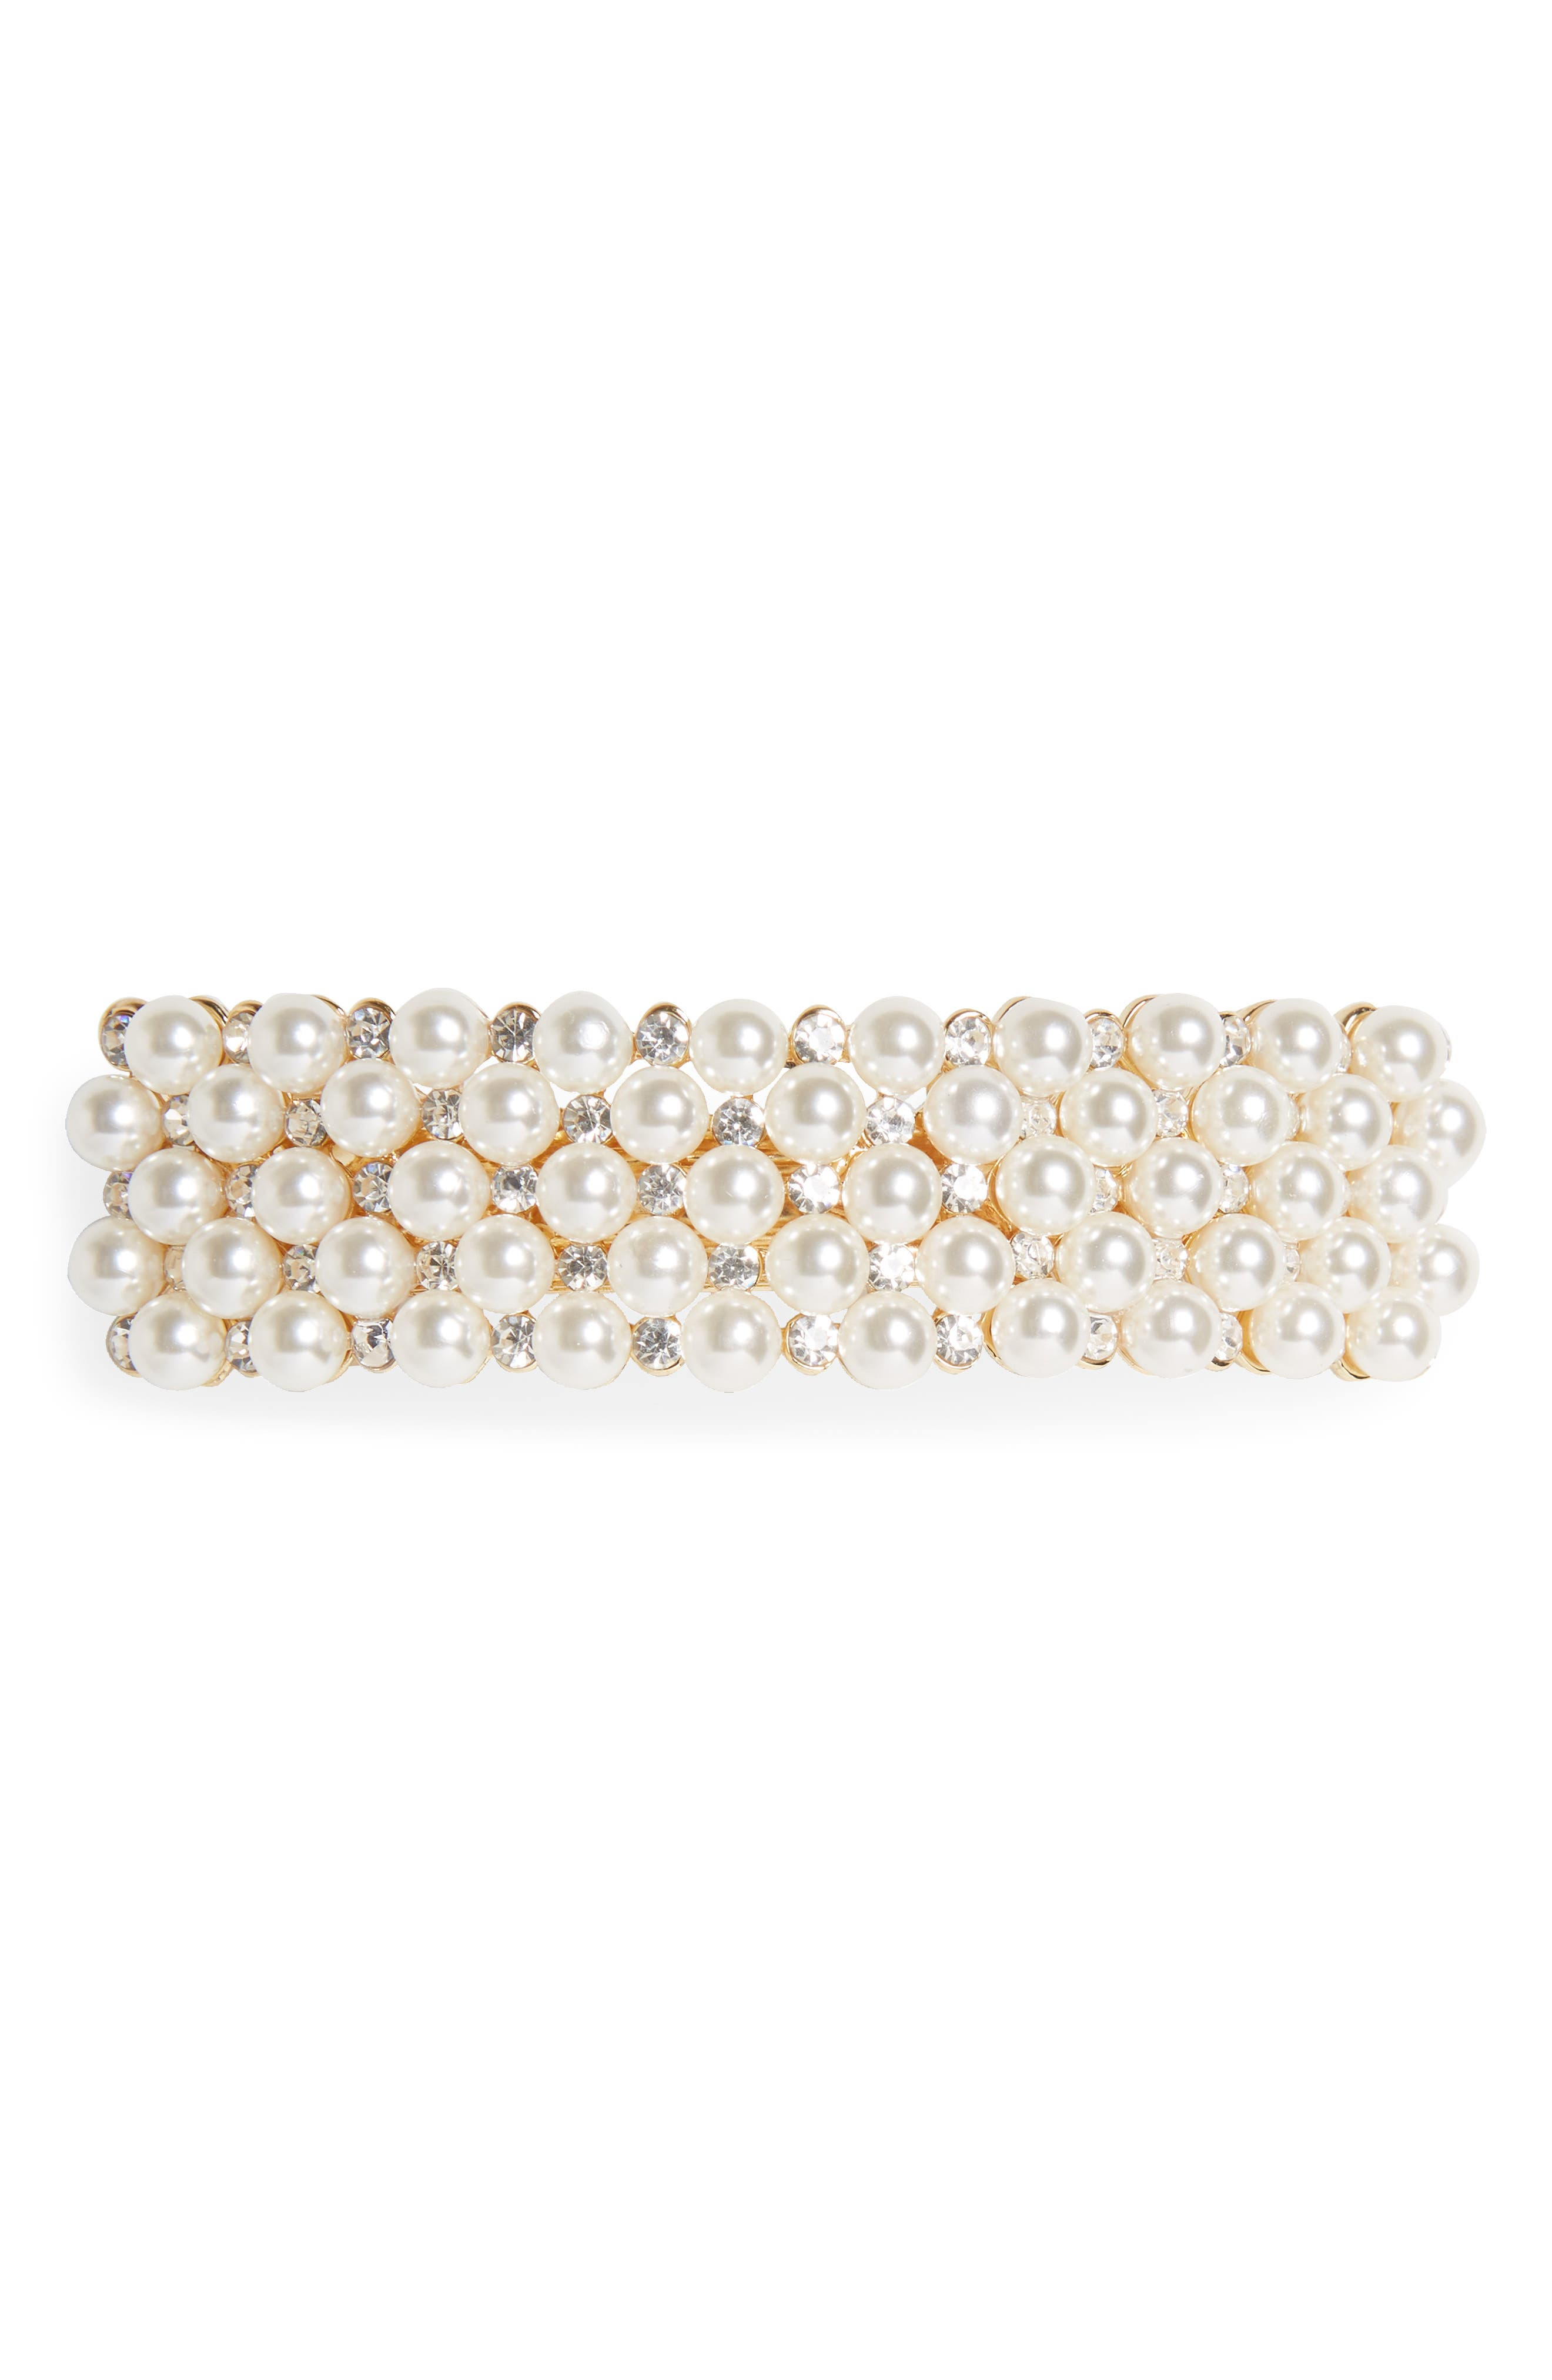 TASHA Crystal & Imitation Pearl Embellished Barrette, Main, color, 710